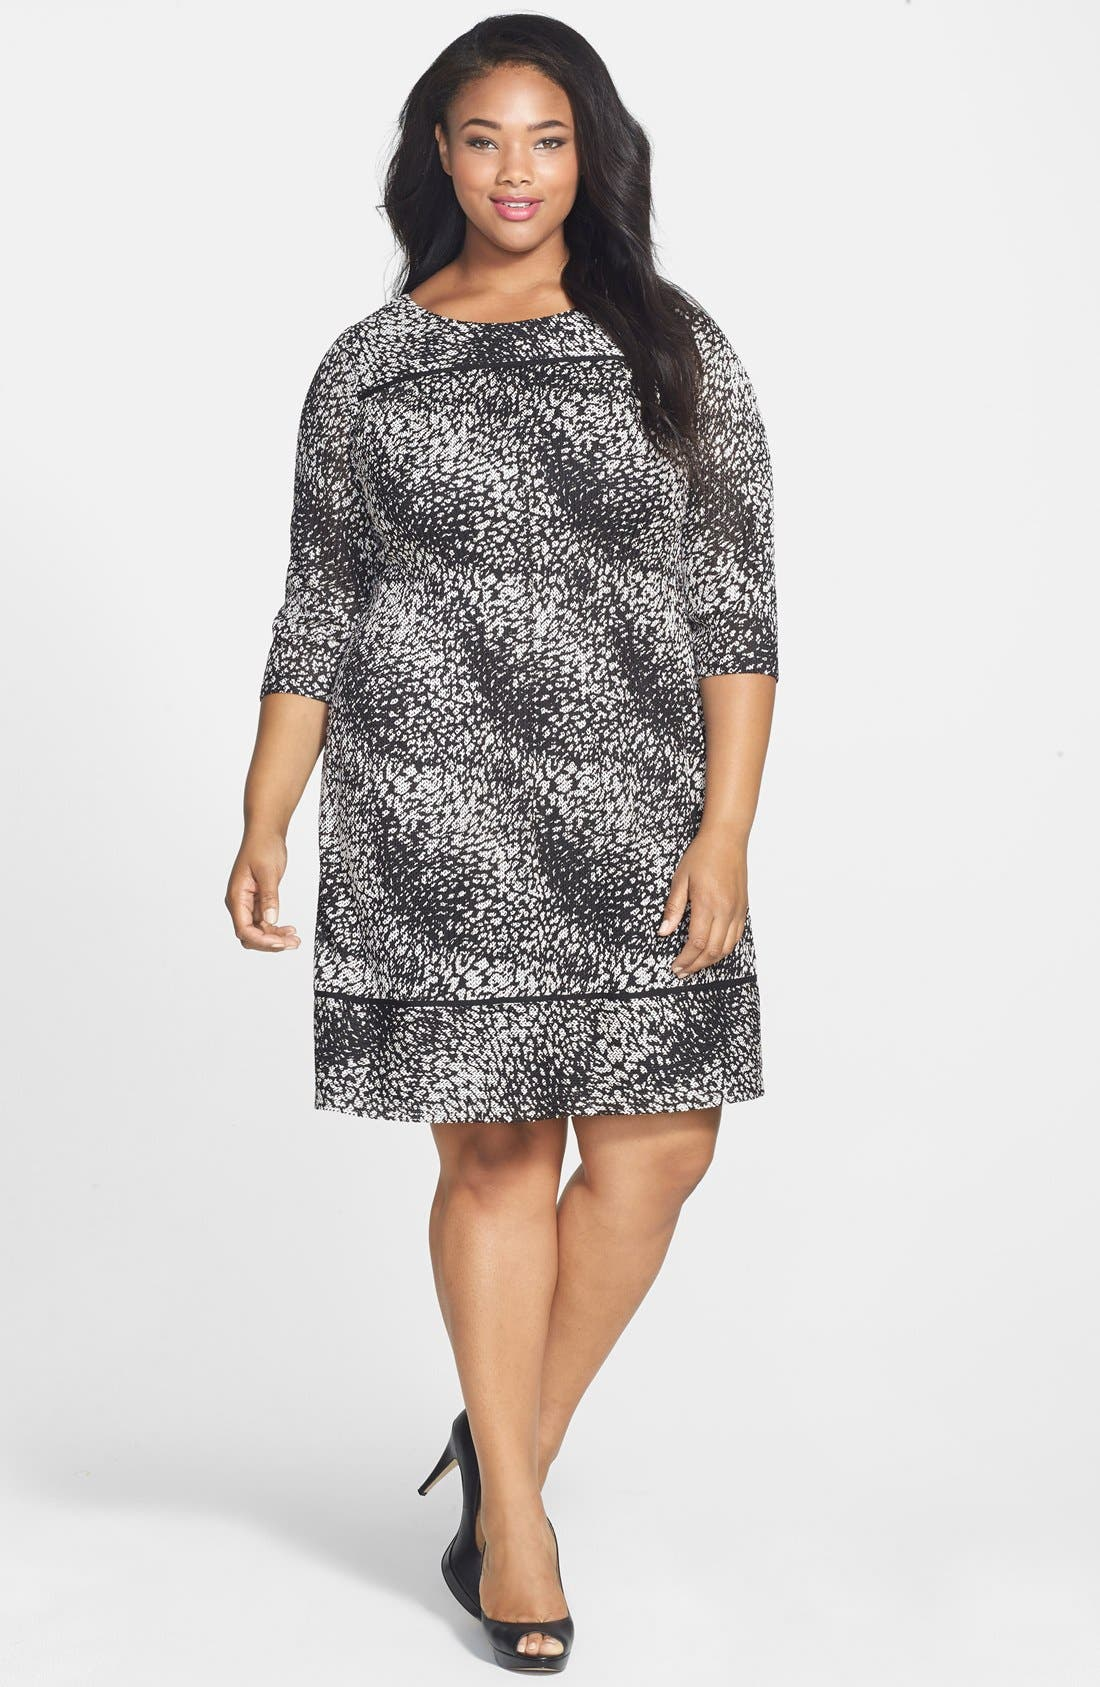 Alternate Image 1 Selected - Adrianna Papell Print Knit Shift Dress (Plus Size)